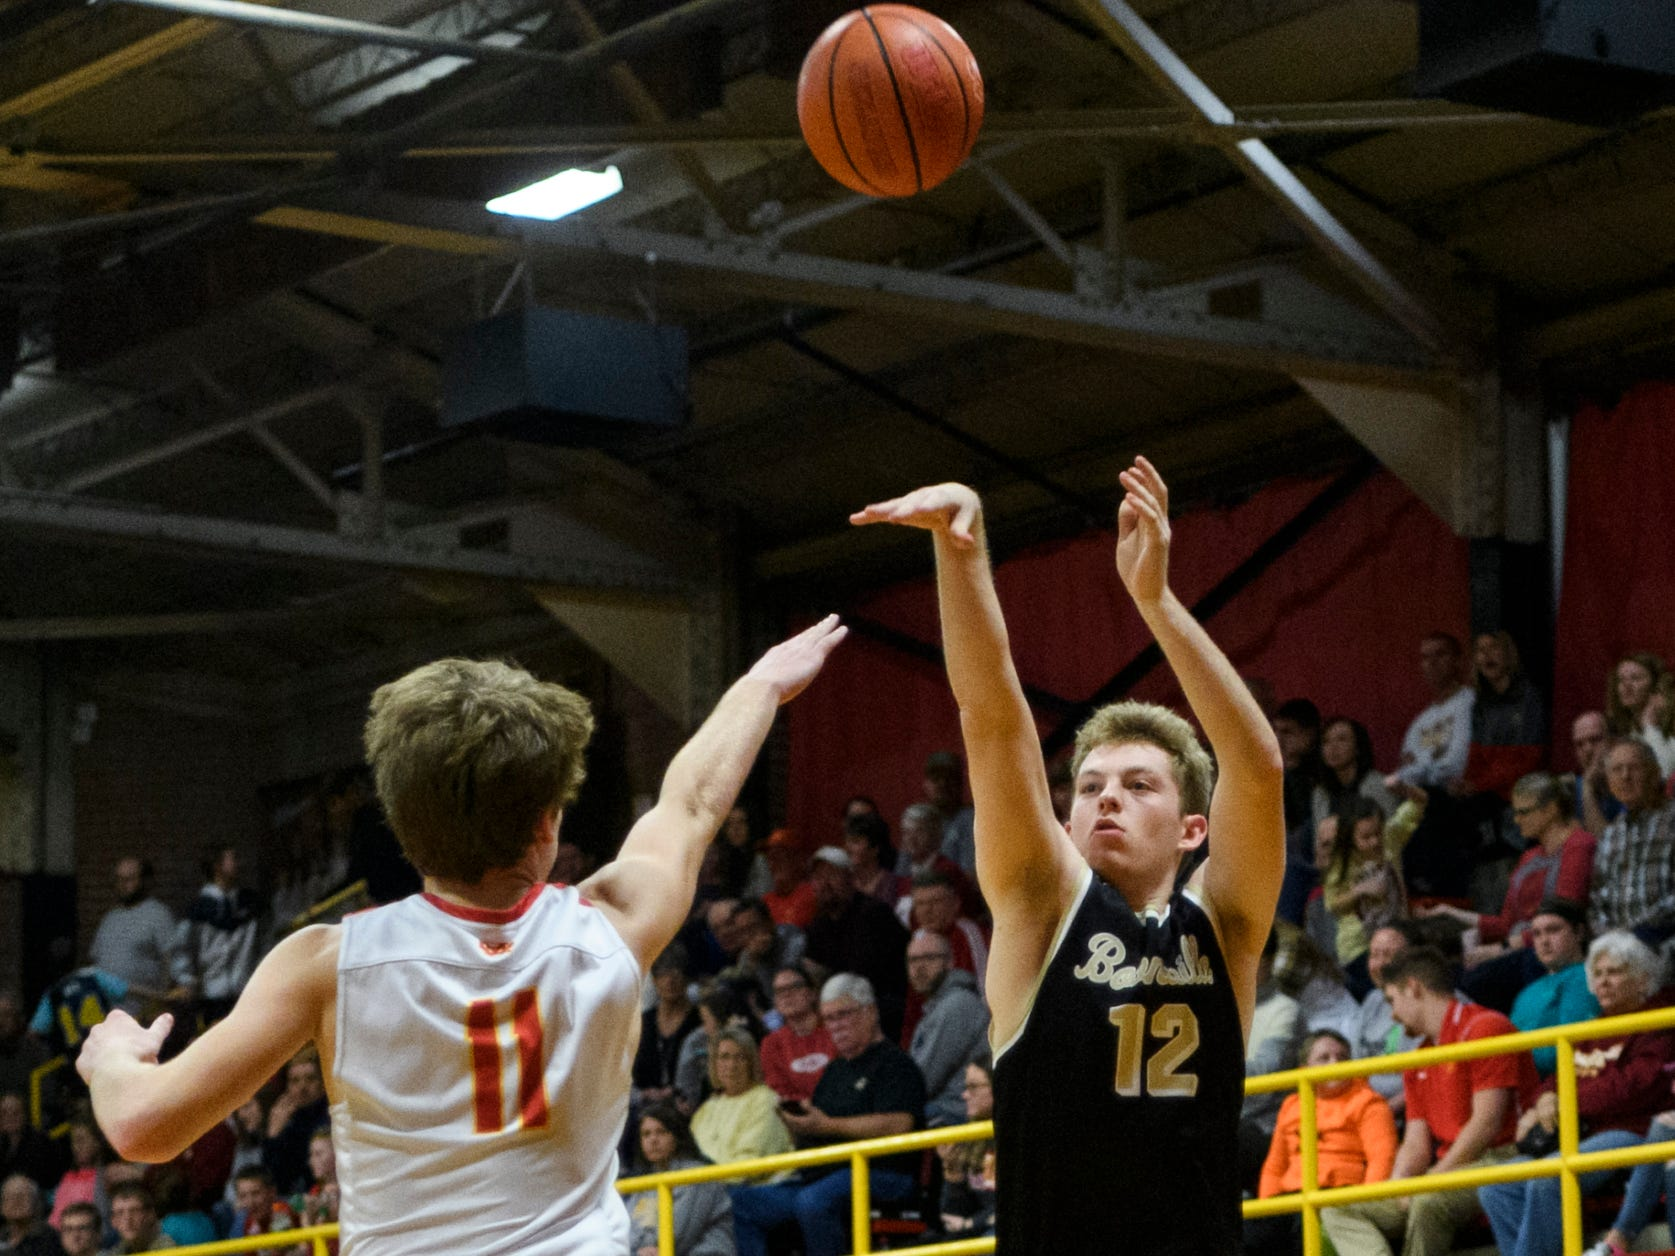 Boonville's Ben Meier (12) attempts a three-pointer over Mater Dei's Dawson Caswell (11) in the second quarter at Mater Dei High School in Evansville, Ind., Saturday, Jan. 5, 2019. The Wildcats defeated the Pioneers, 93-65.